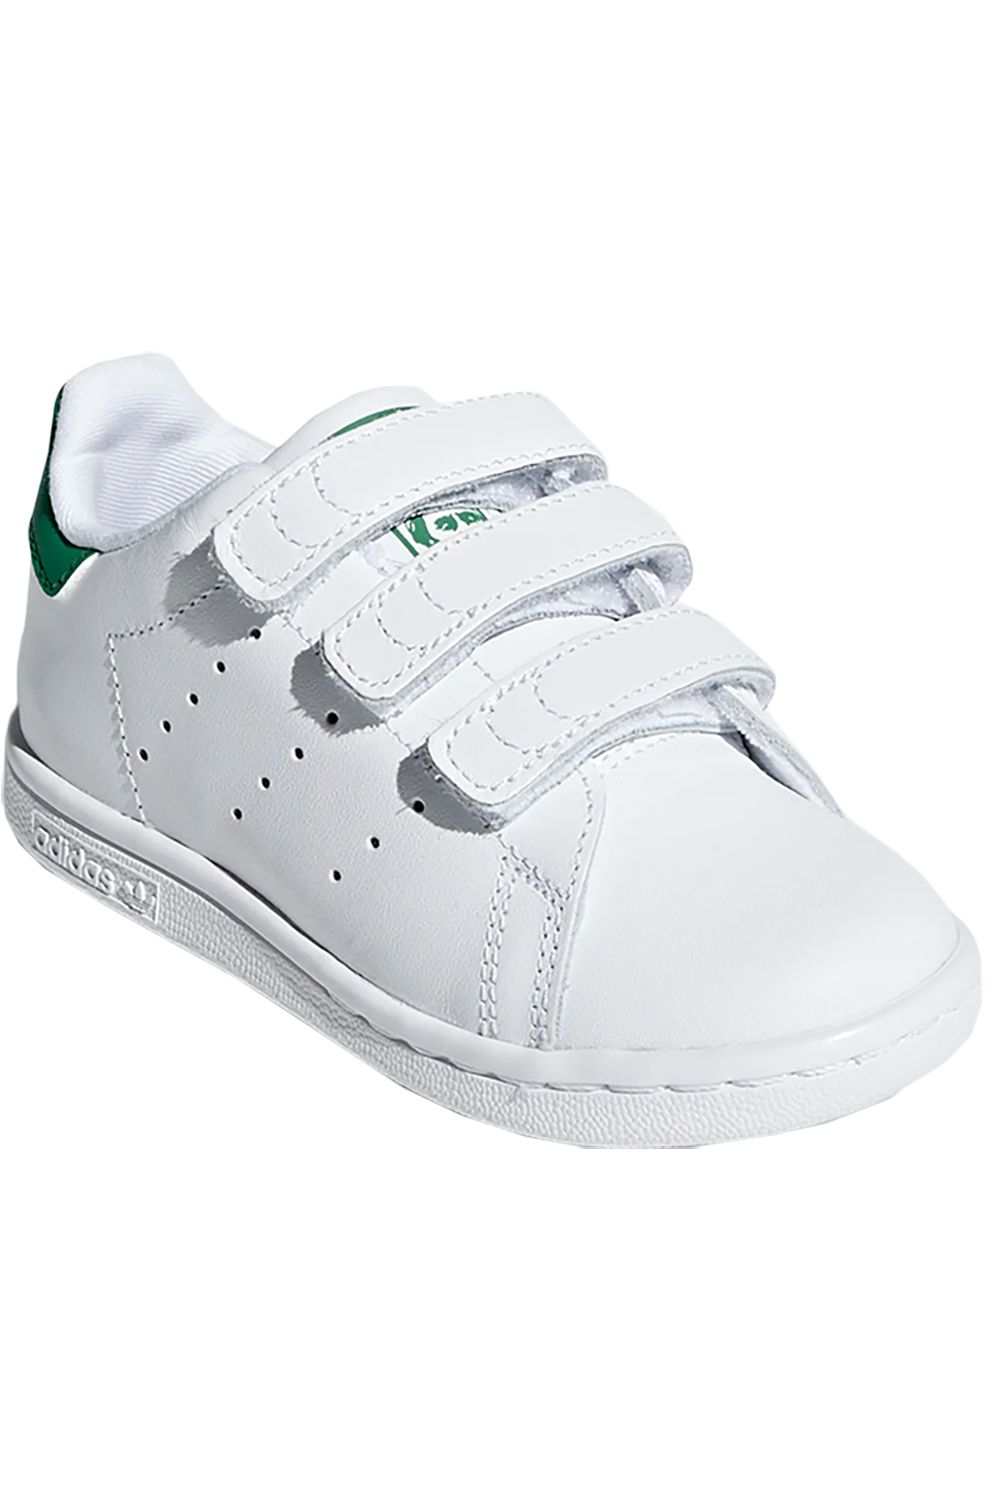 Tenis Adidas STAN SMITH CF I Ftwr White/Ftwr White/Green